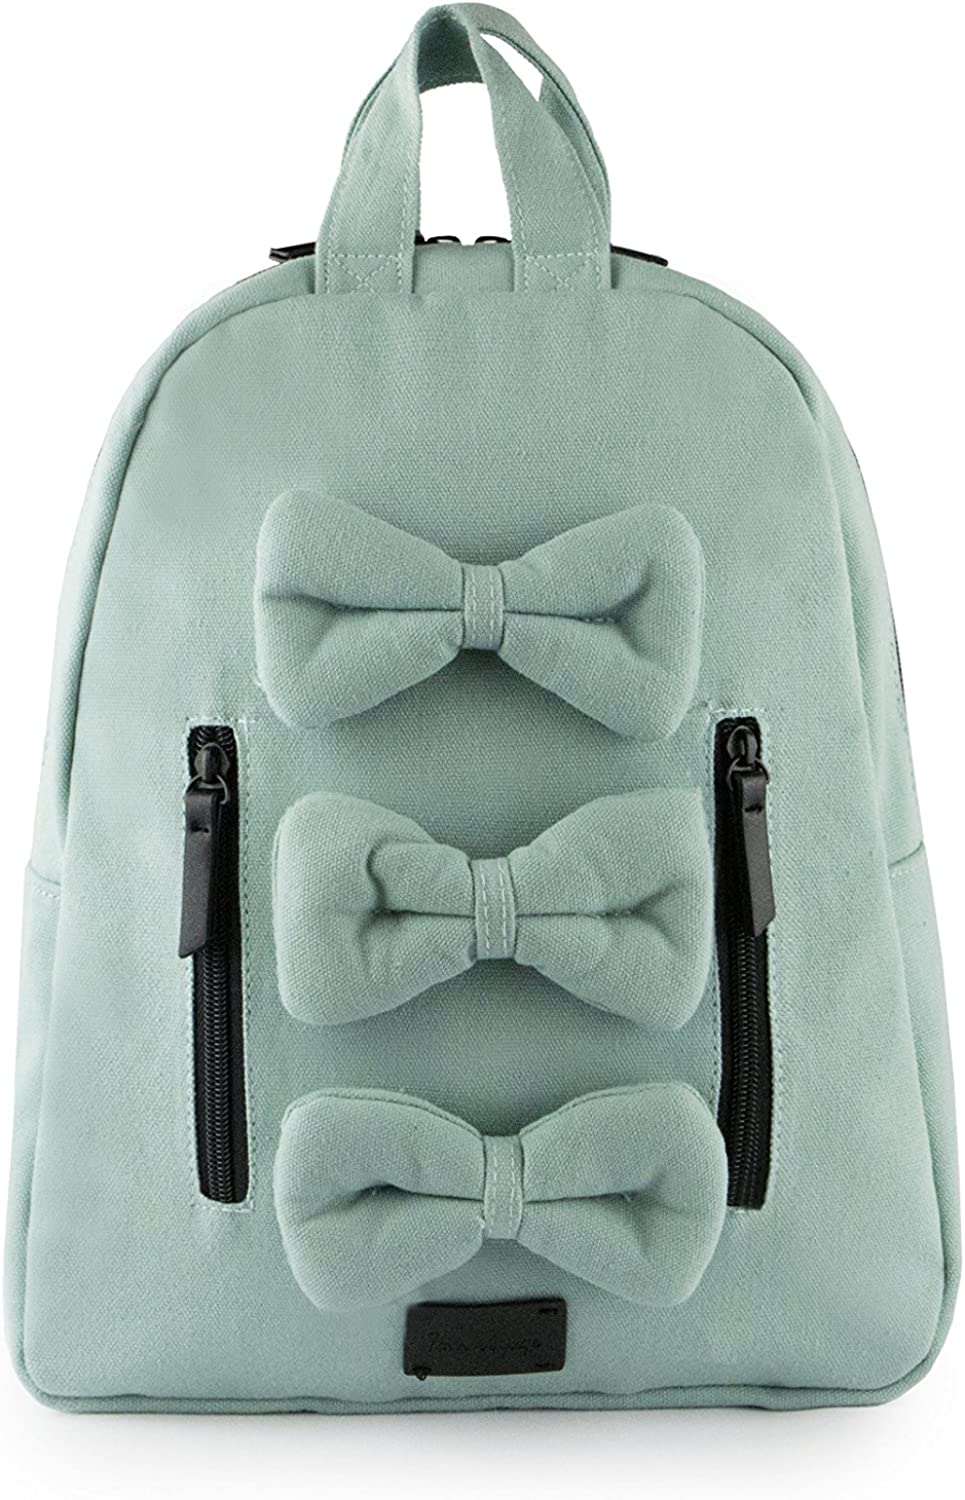 7AM Voyage Mini Bows Cotton Backpack, Toddlers, Kids and Teens School Backpack (Aqua)